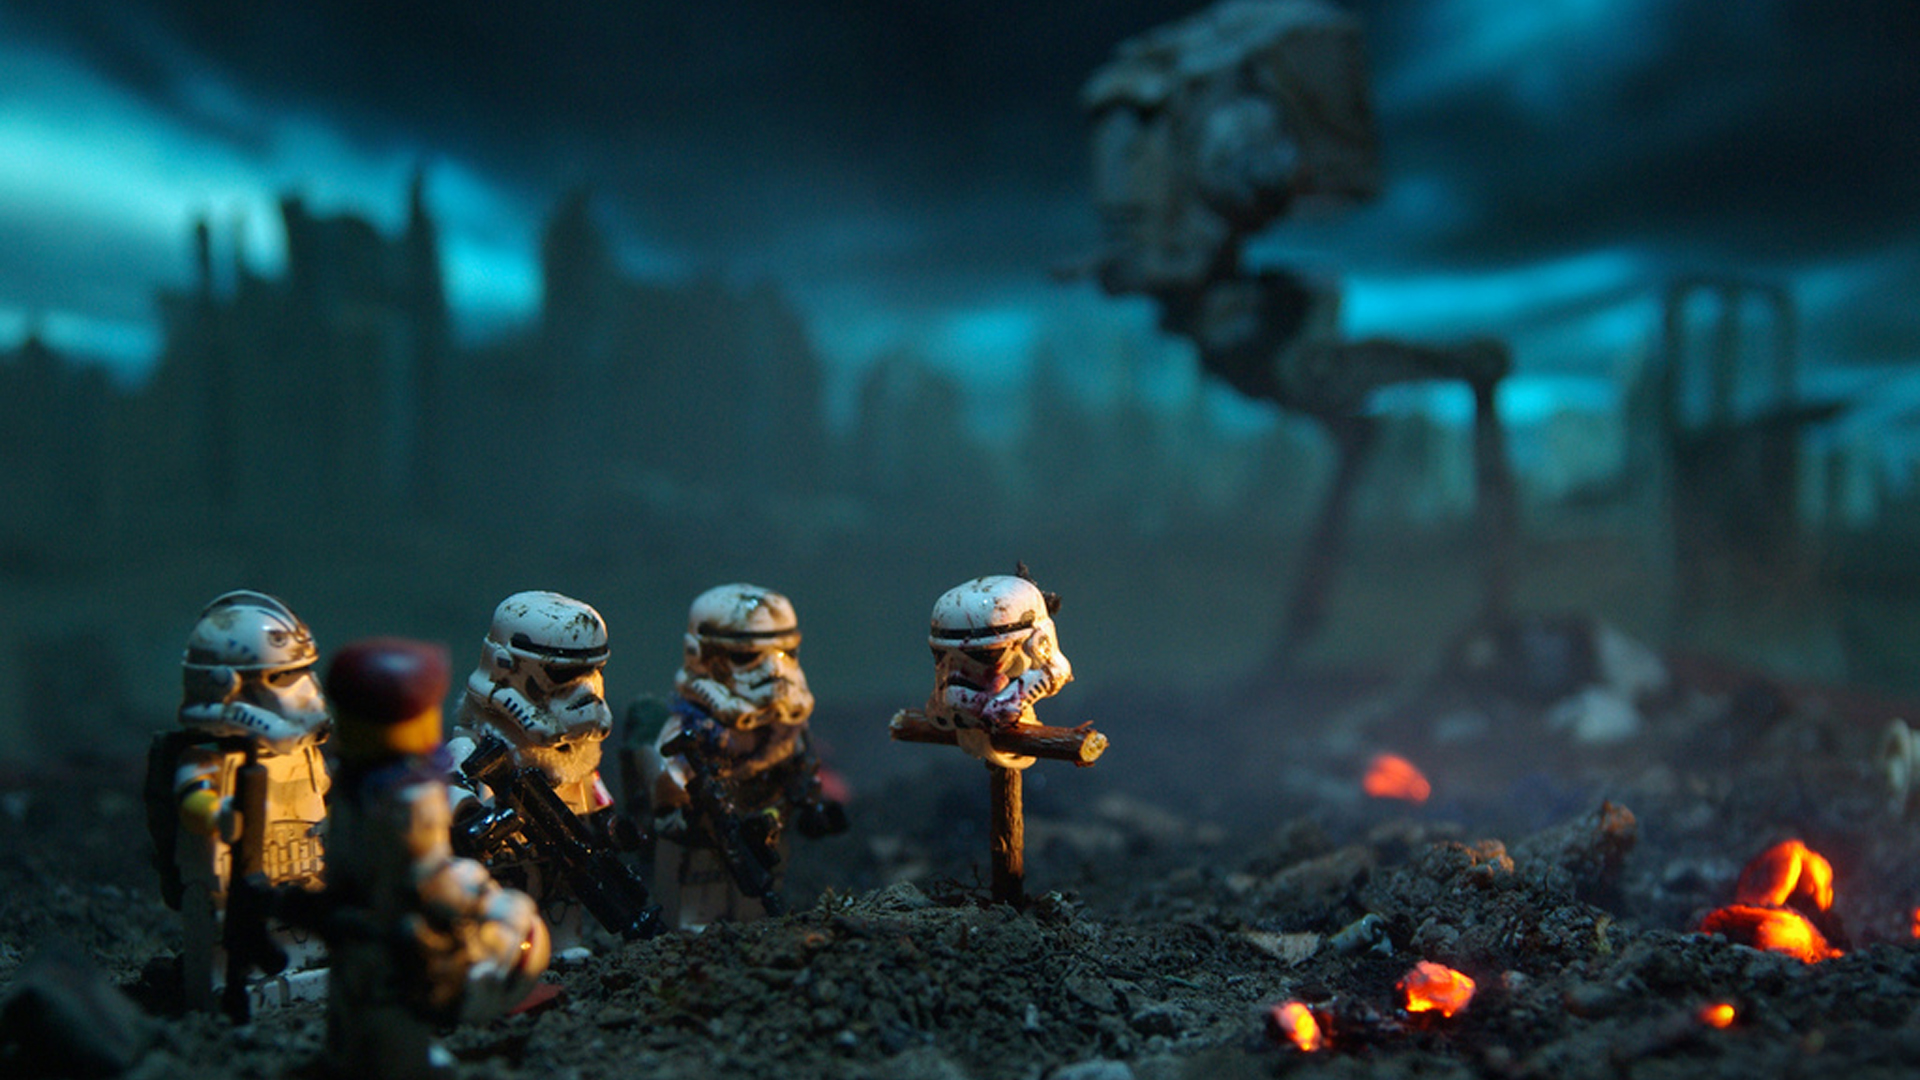 Lego Star Wars Stormtroopers 676